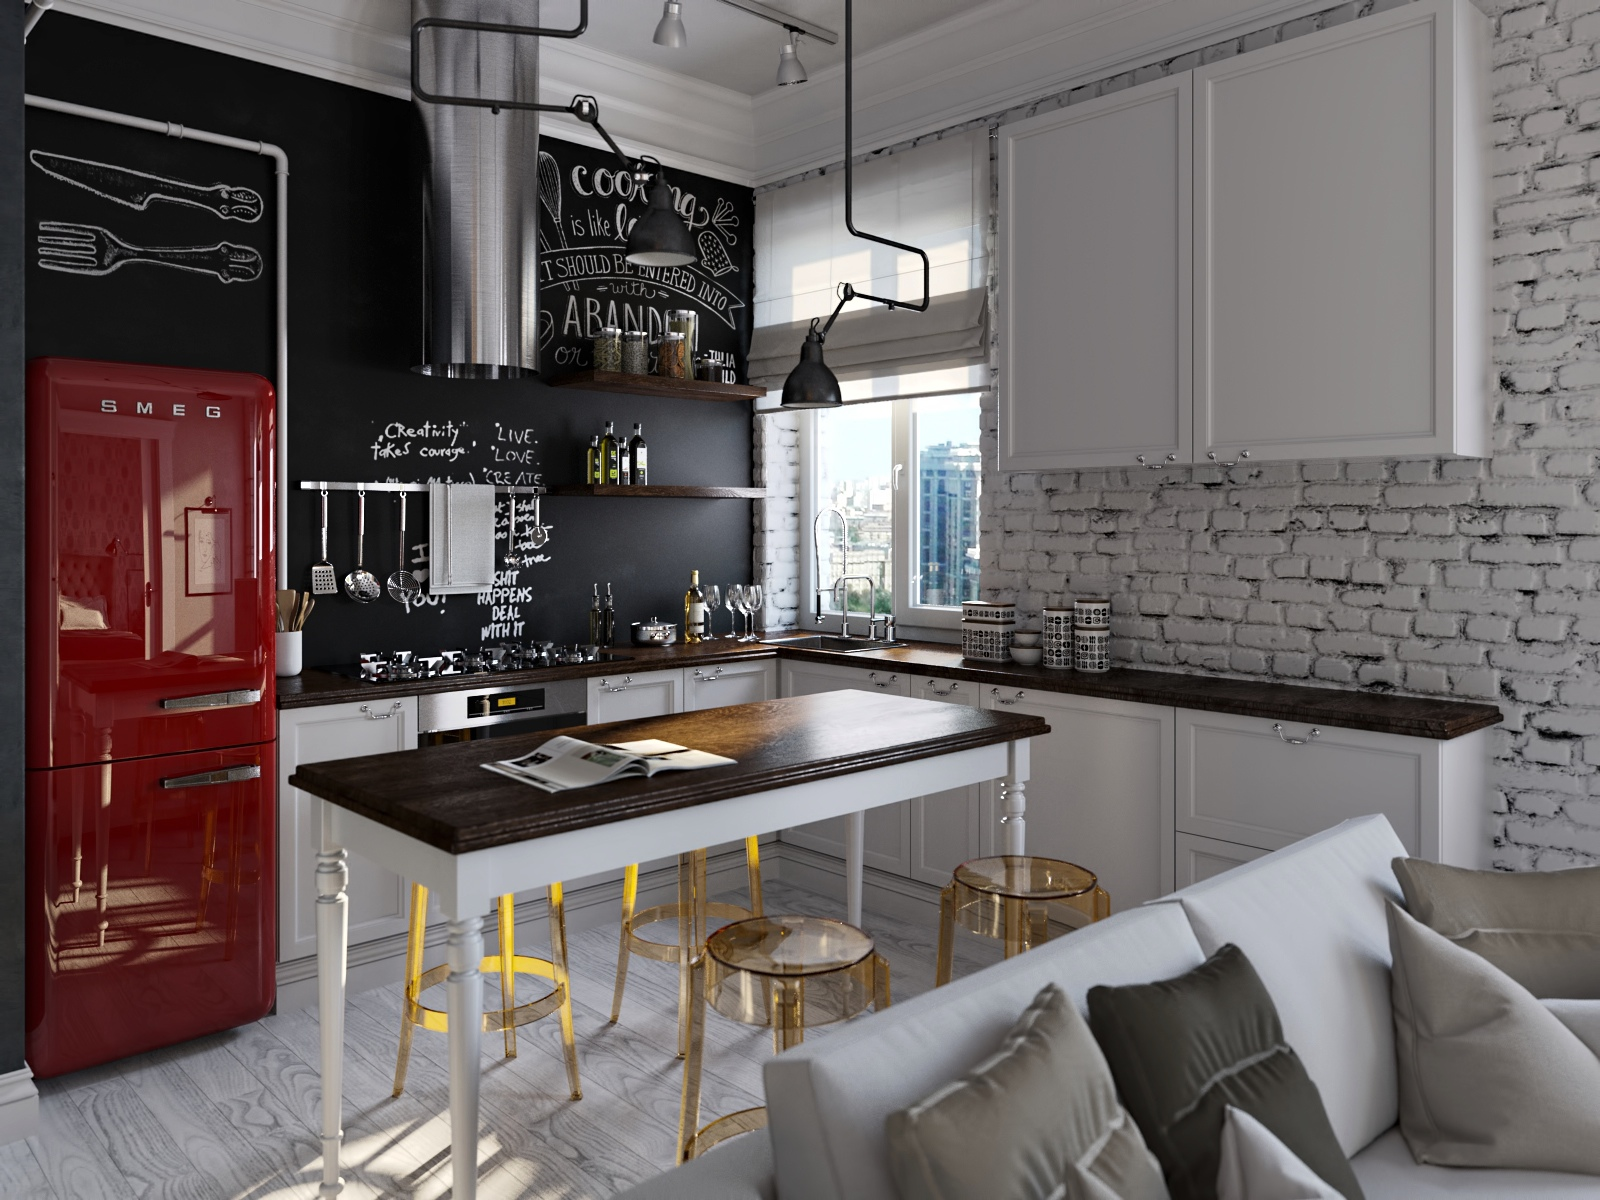 Red smeg fridge interior design ideas for Kitchen and bedroom designs